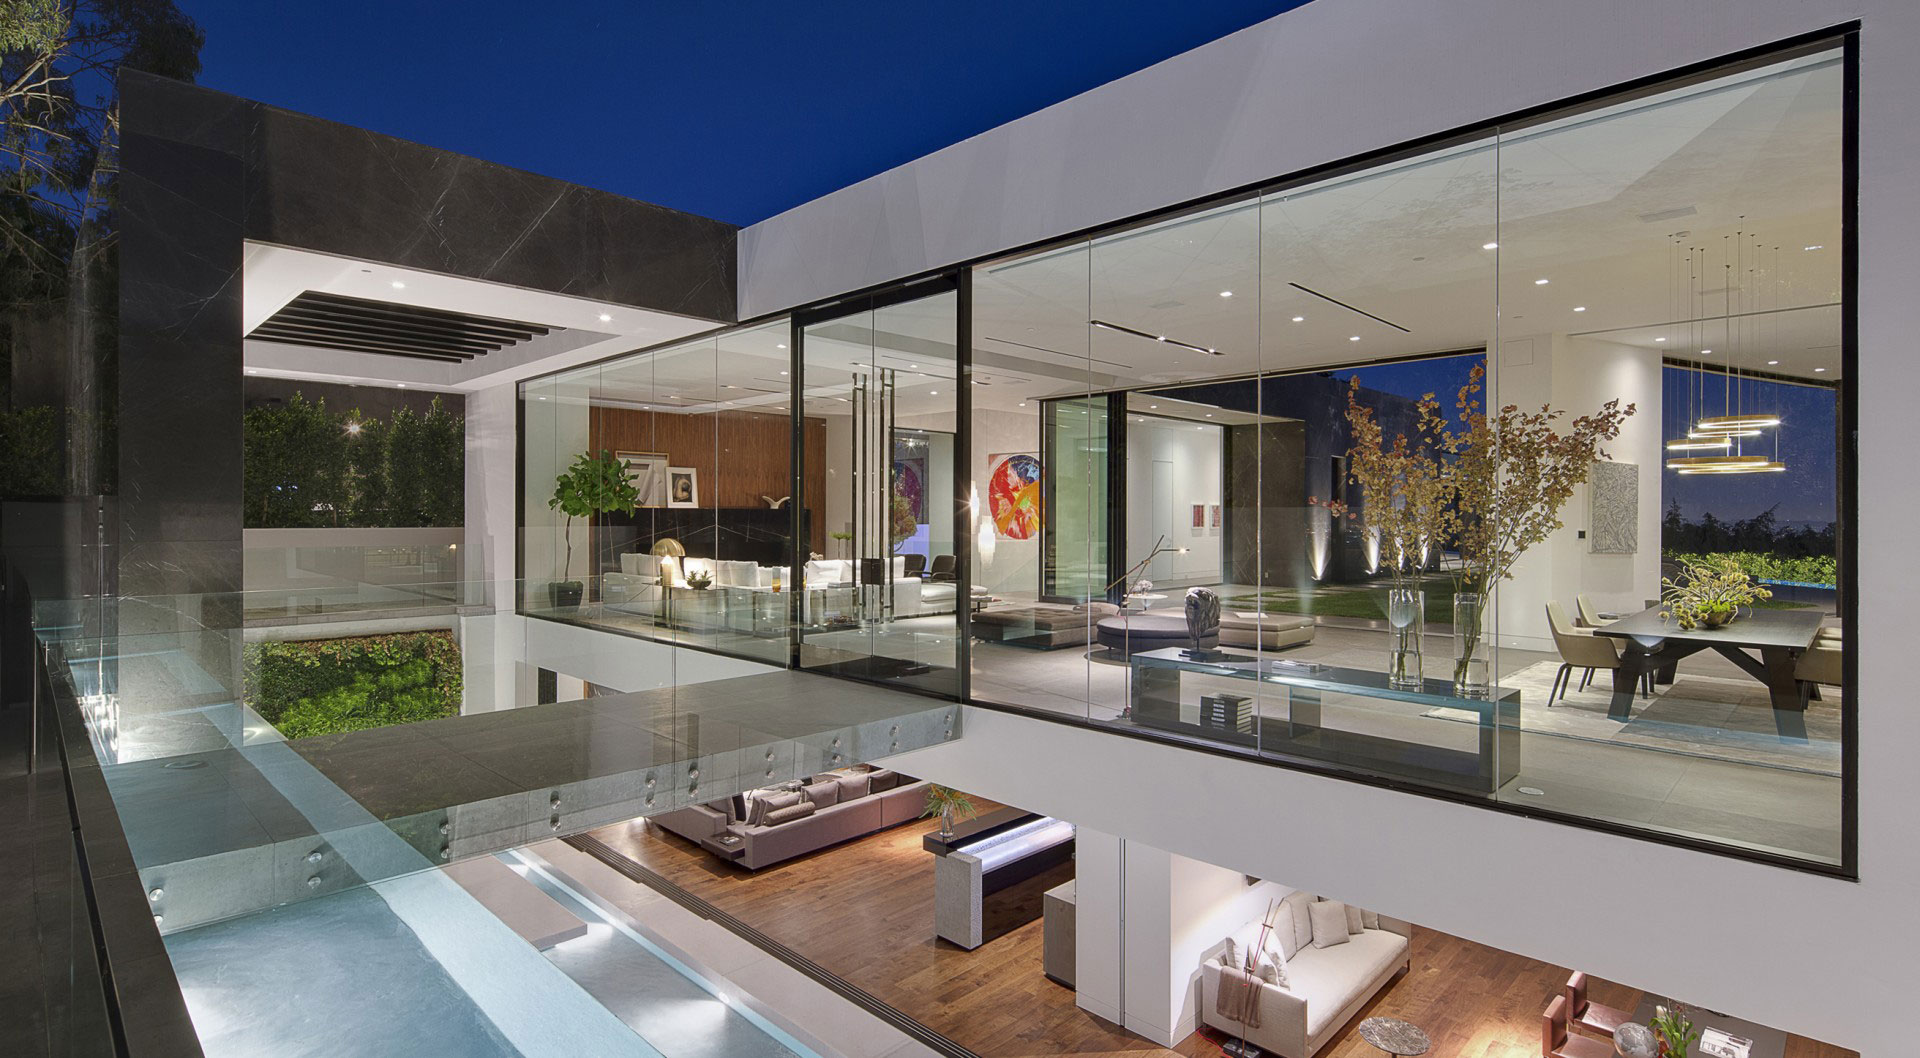 Two Story Glass House - A dramatic glass home overlooking the l a basin